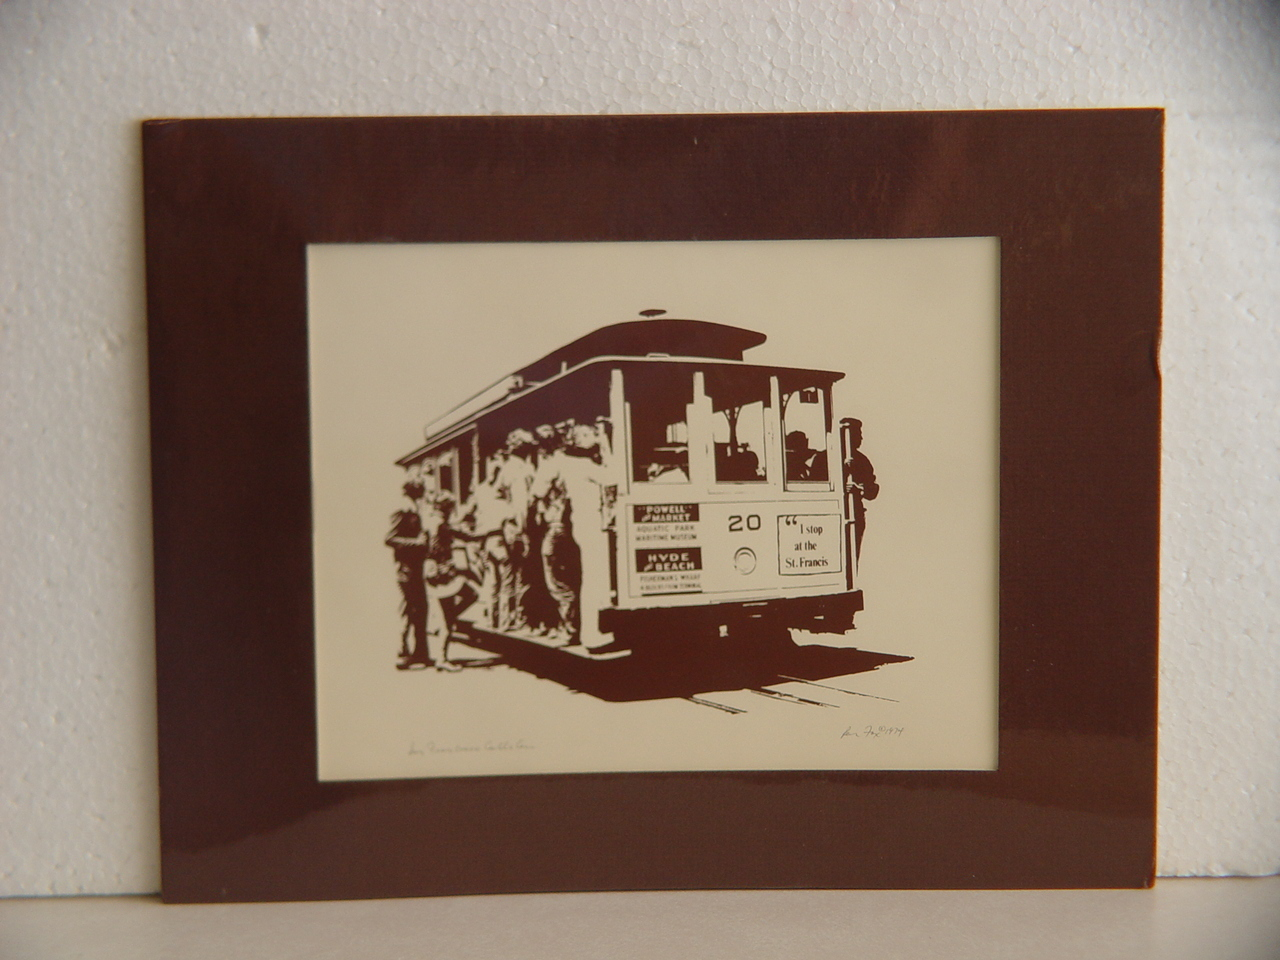 Silk Screen Print of San Francisco Cable Car by Ron Fox 1974